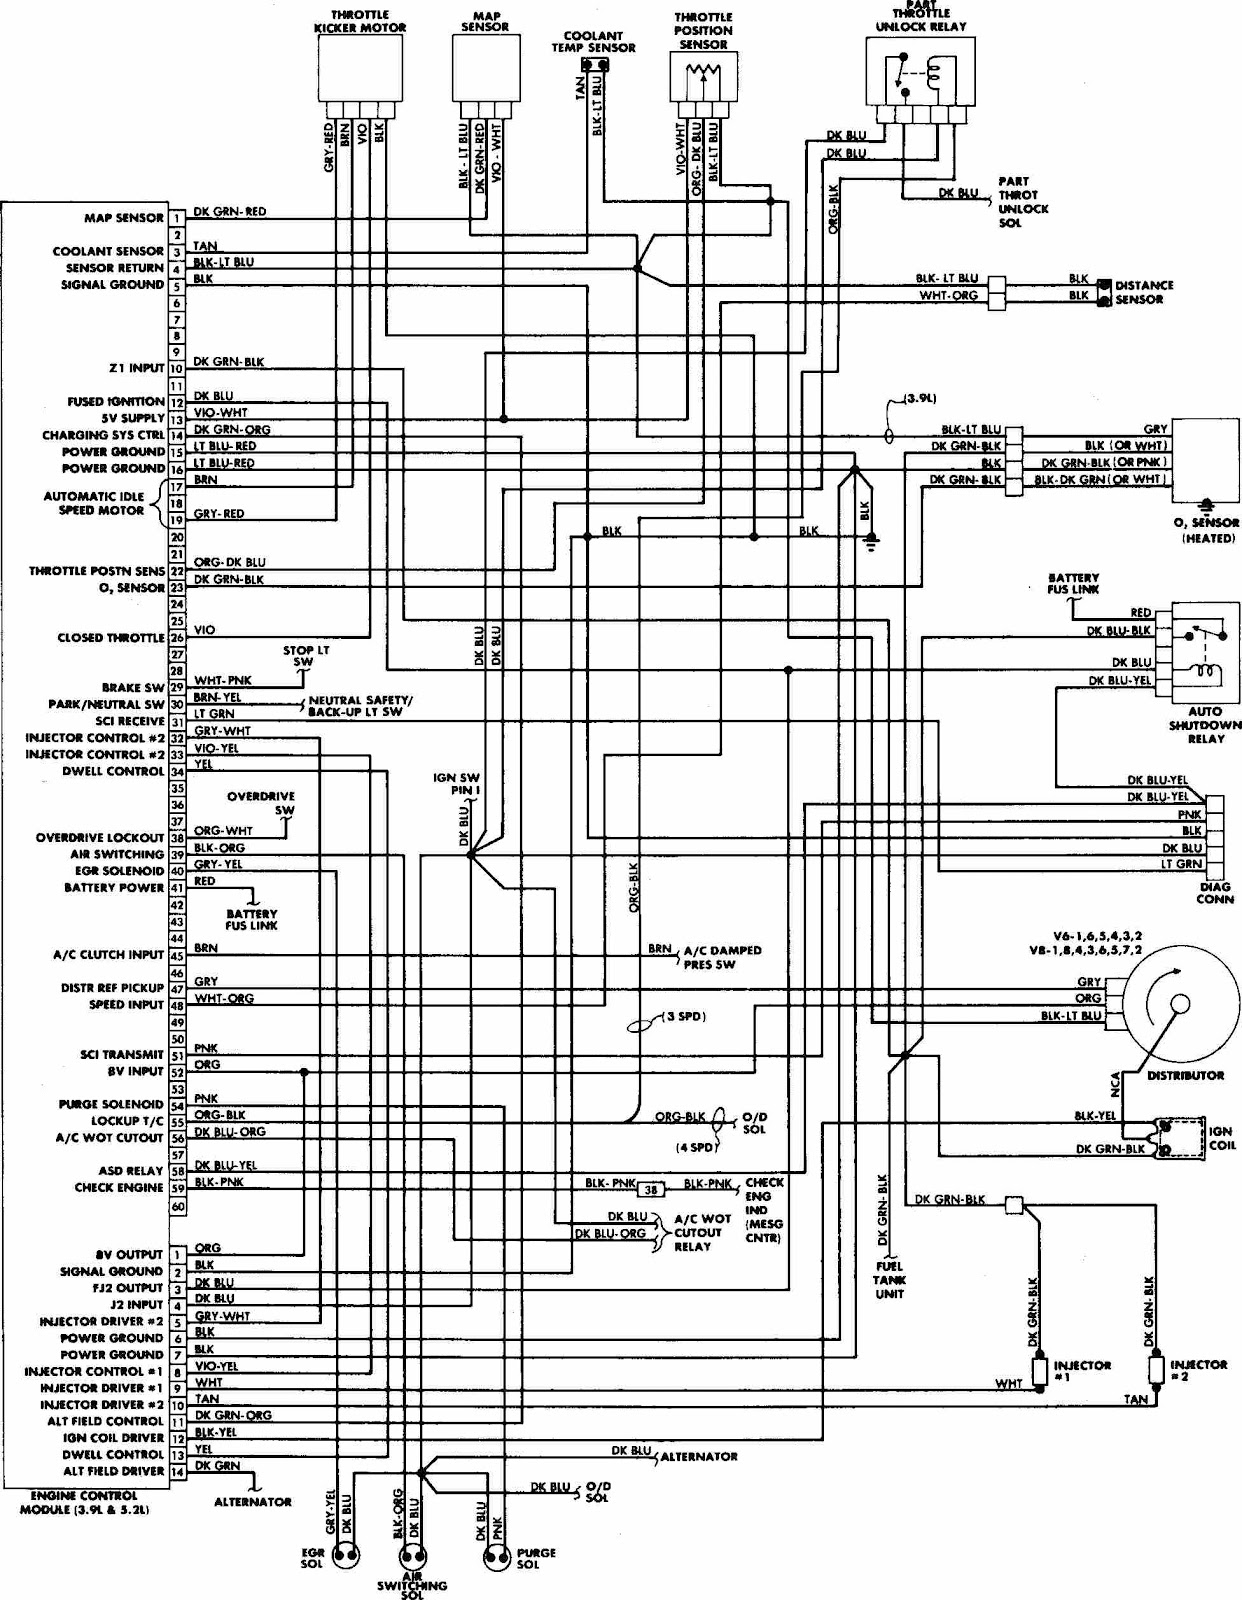 dodge w100 1988 engine control wiring diagram dodge  [ 1242 x 1600 Pixel ]